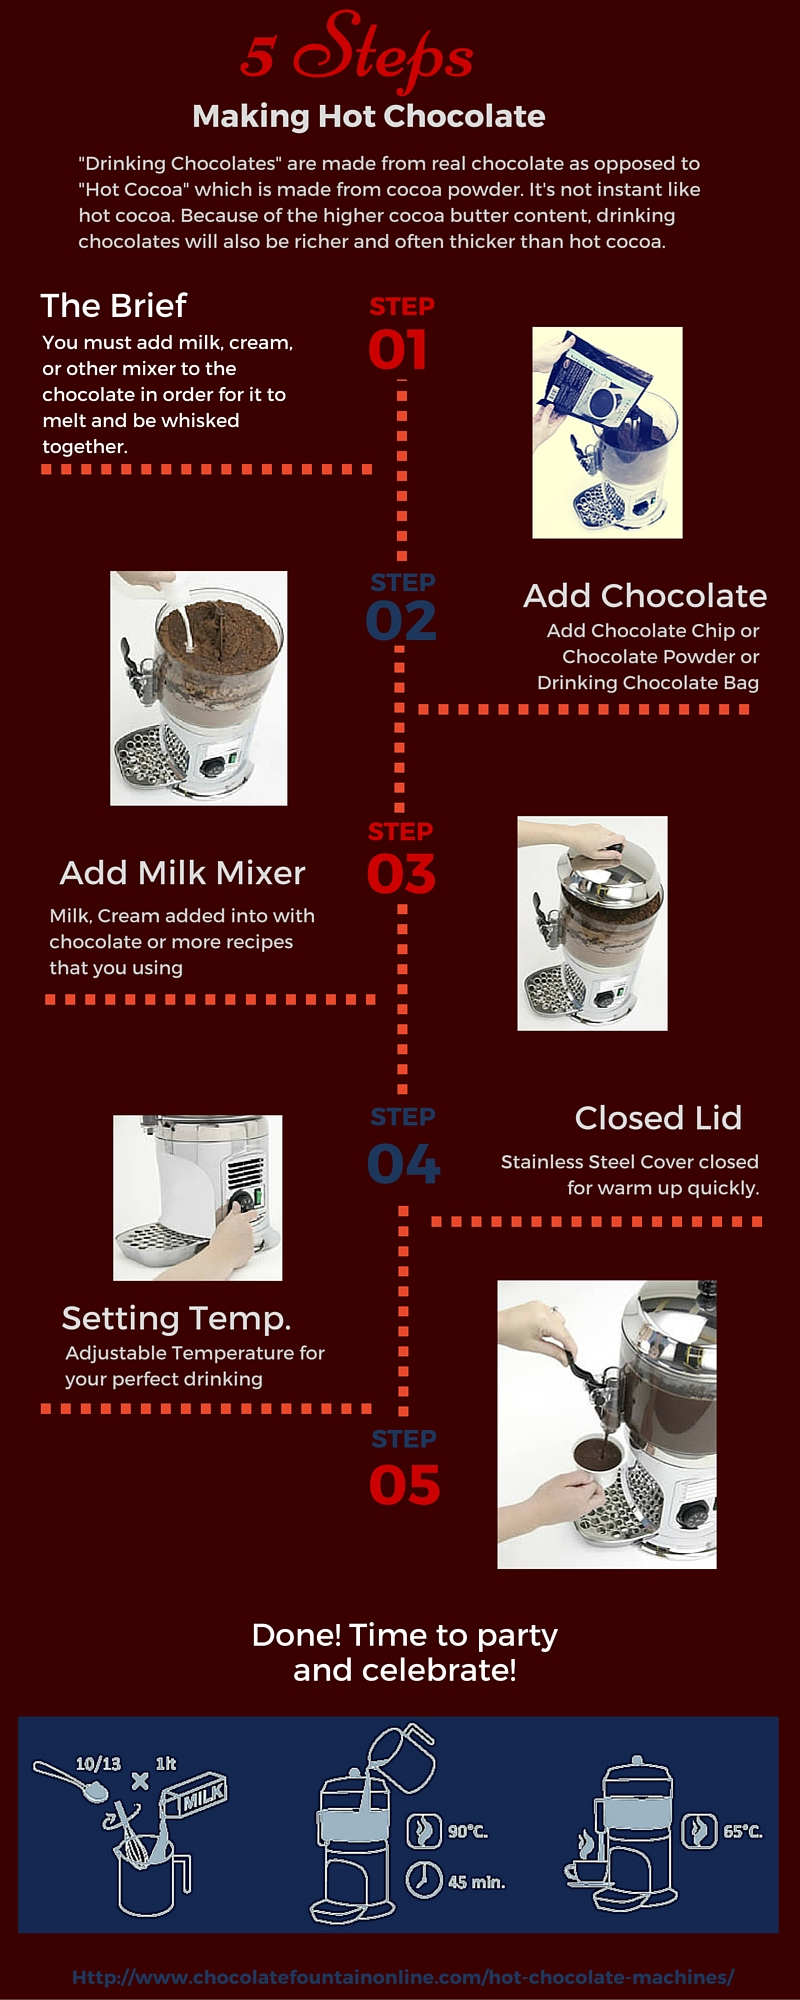 5 steps making hot chocolate